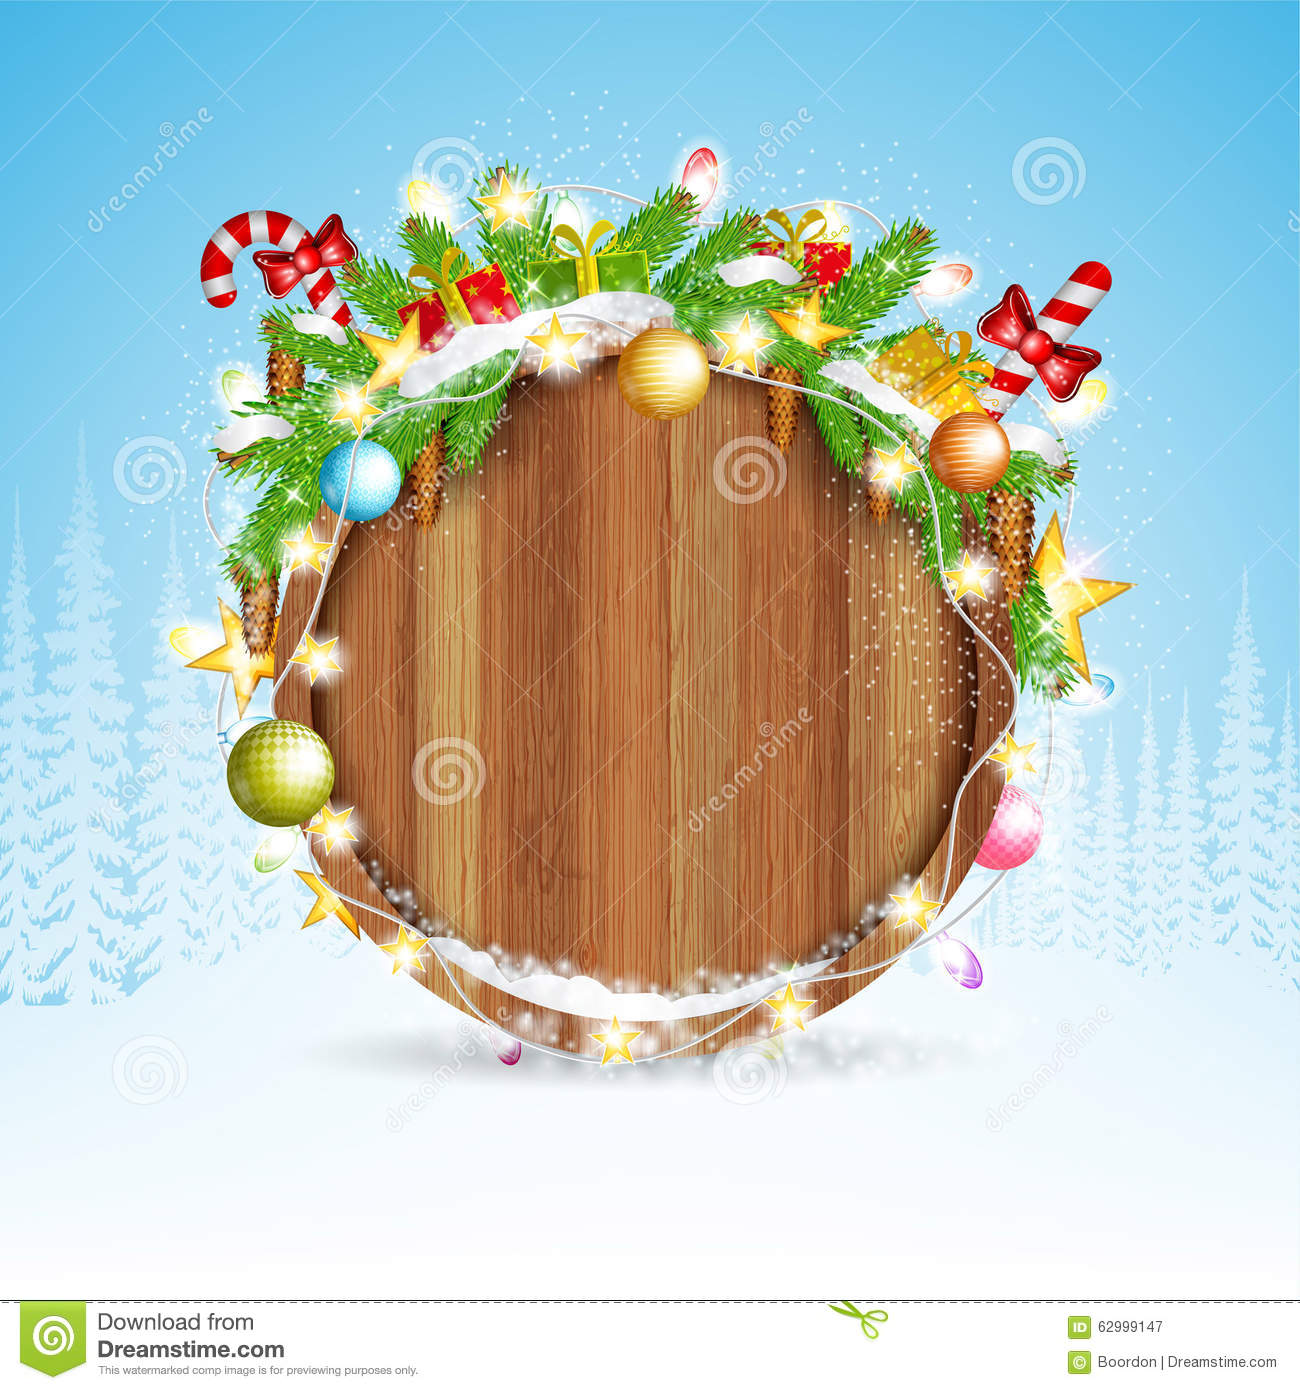 Snowy fir tree branch cones and presents on round wood border. winter christmas background